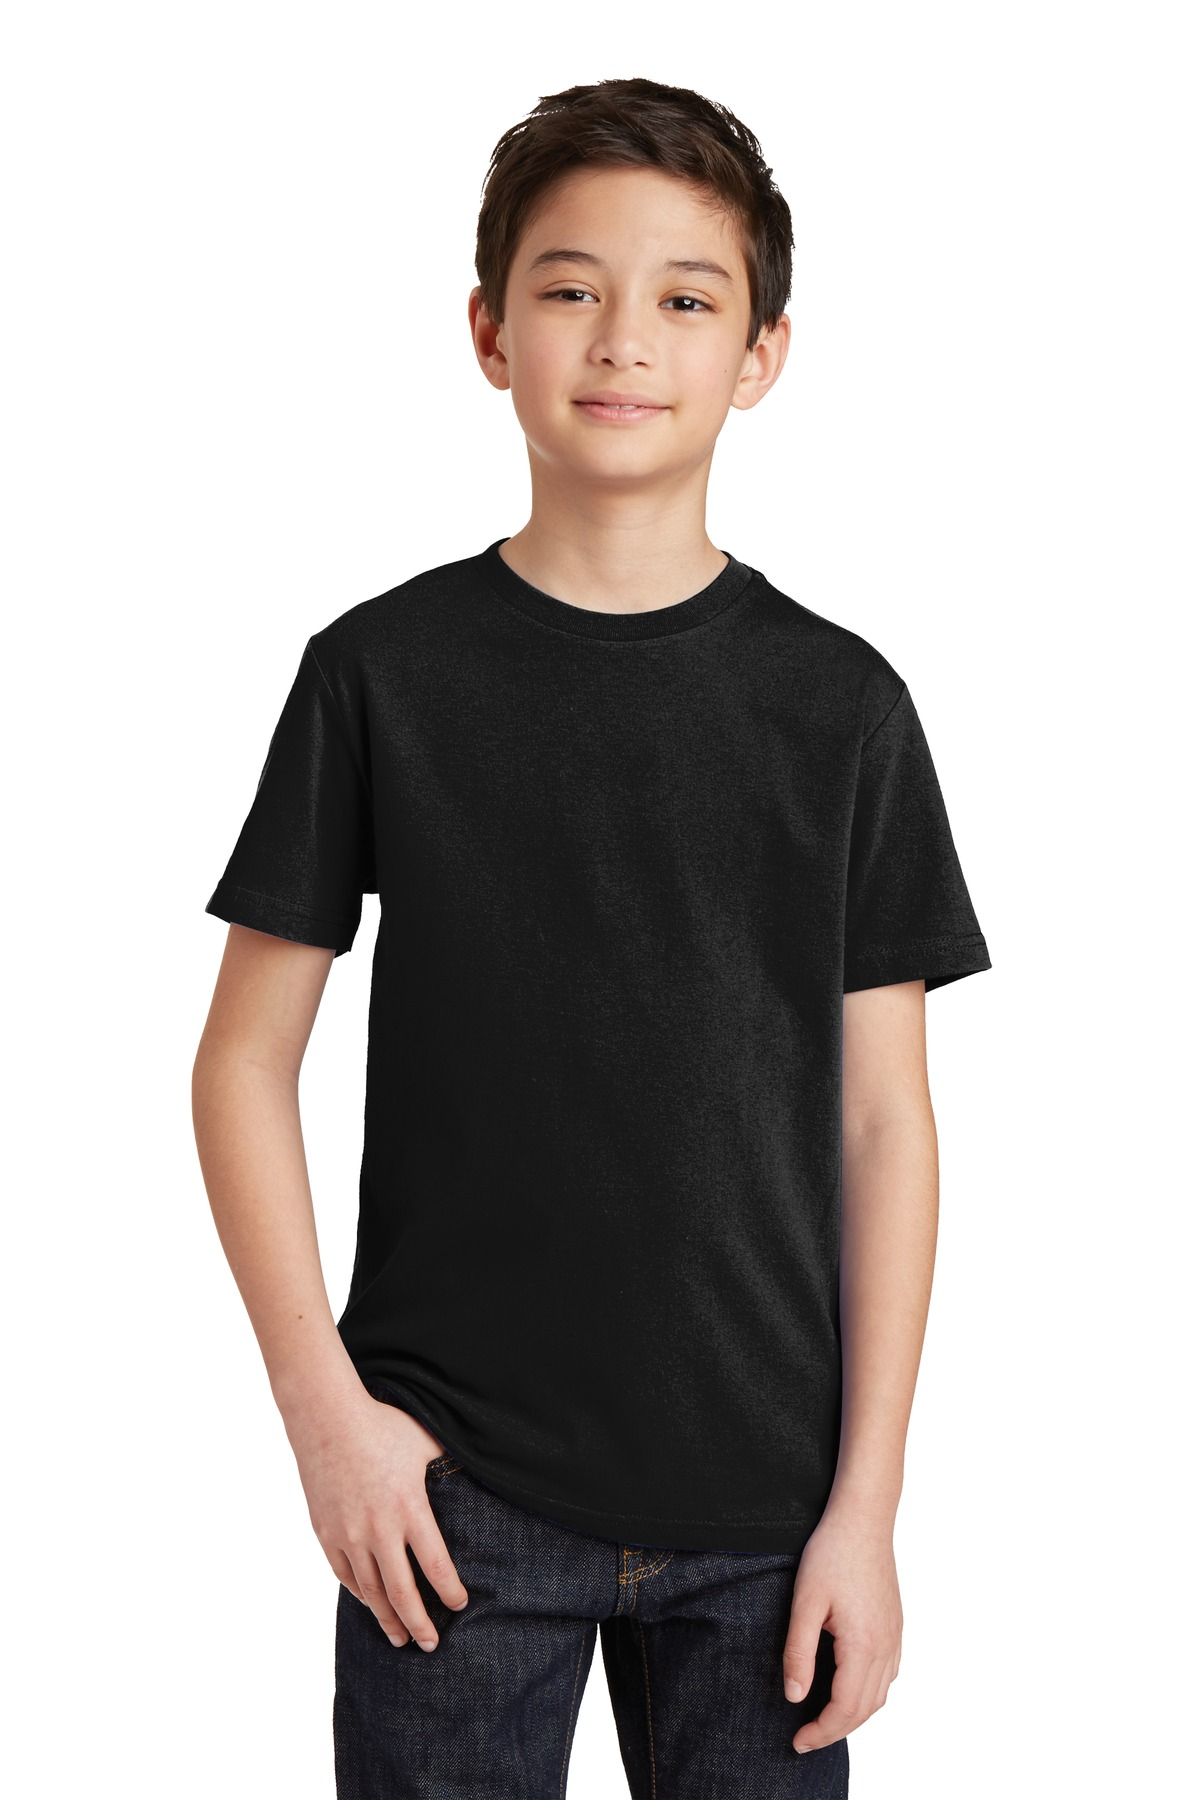 Boys' T-Shirts & Shirts for Every Activity. Shirts for boys from DICK'S Sporting Goods offer maximum versatility and are perfect for a range of activities and casual settings. Tailored for a great fit and made from high-quality materials that are soft to the touch, boys' shirts are always a comfortable option.